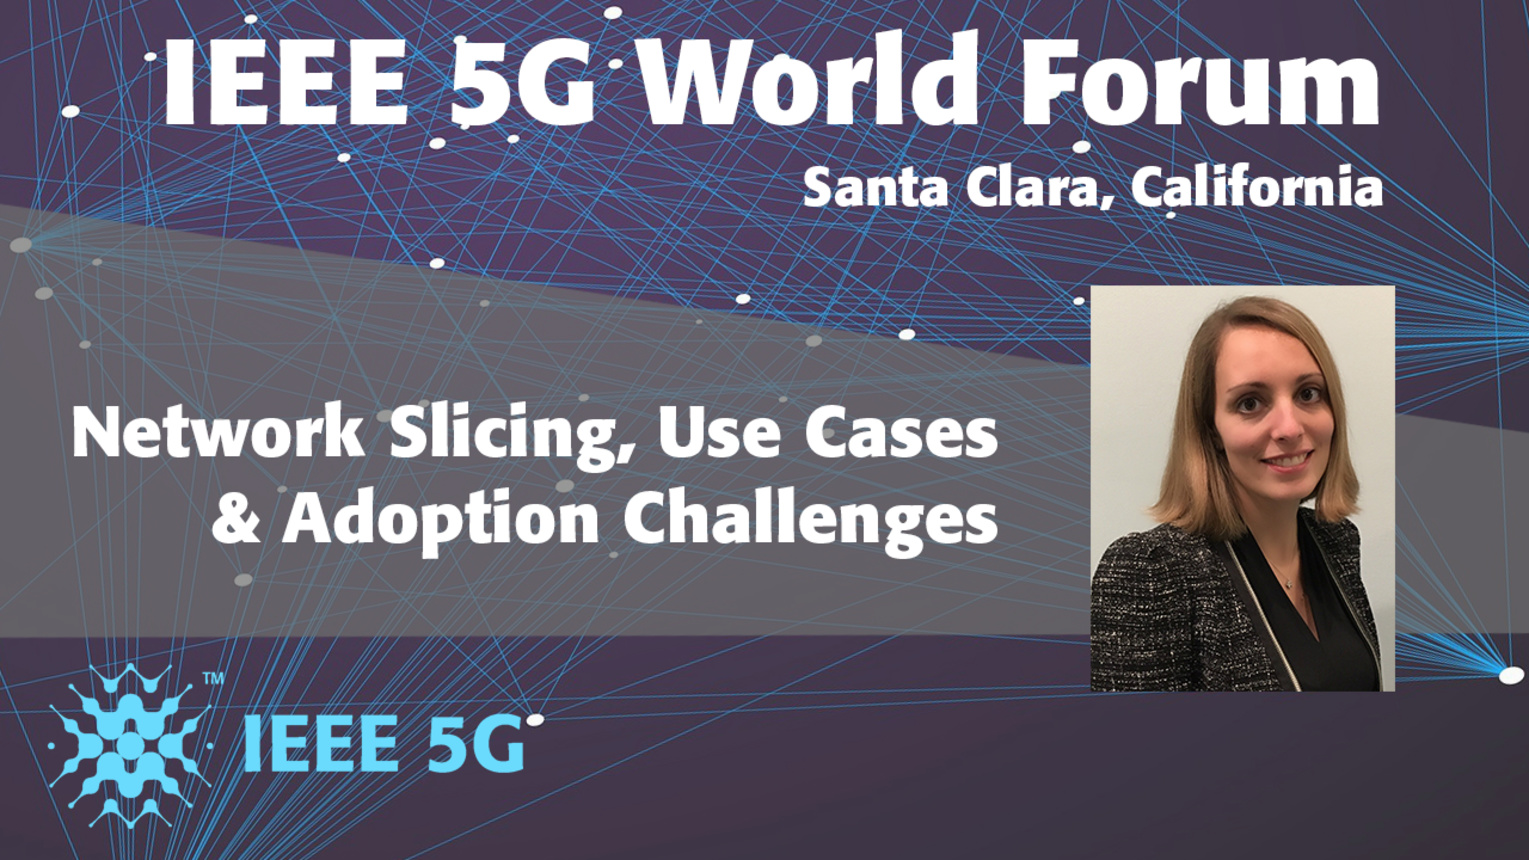 Network Slicing, Use Cases and Adoption Challenges - Ilaria Brunelli - 5G World Forum Santa Clara 2018